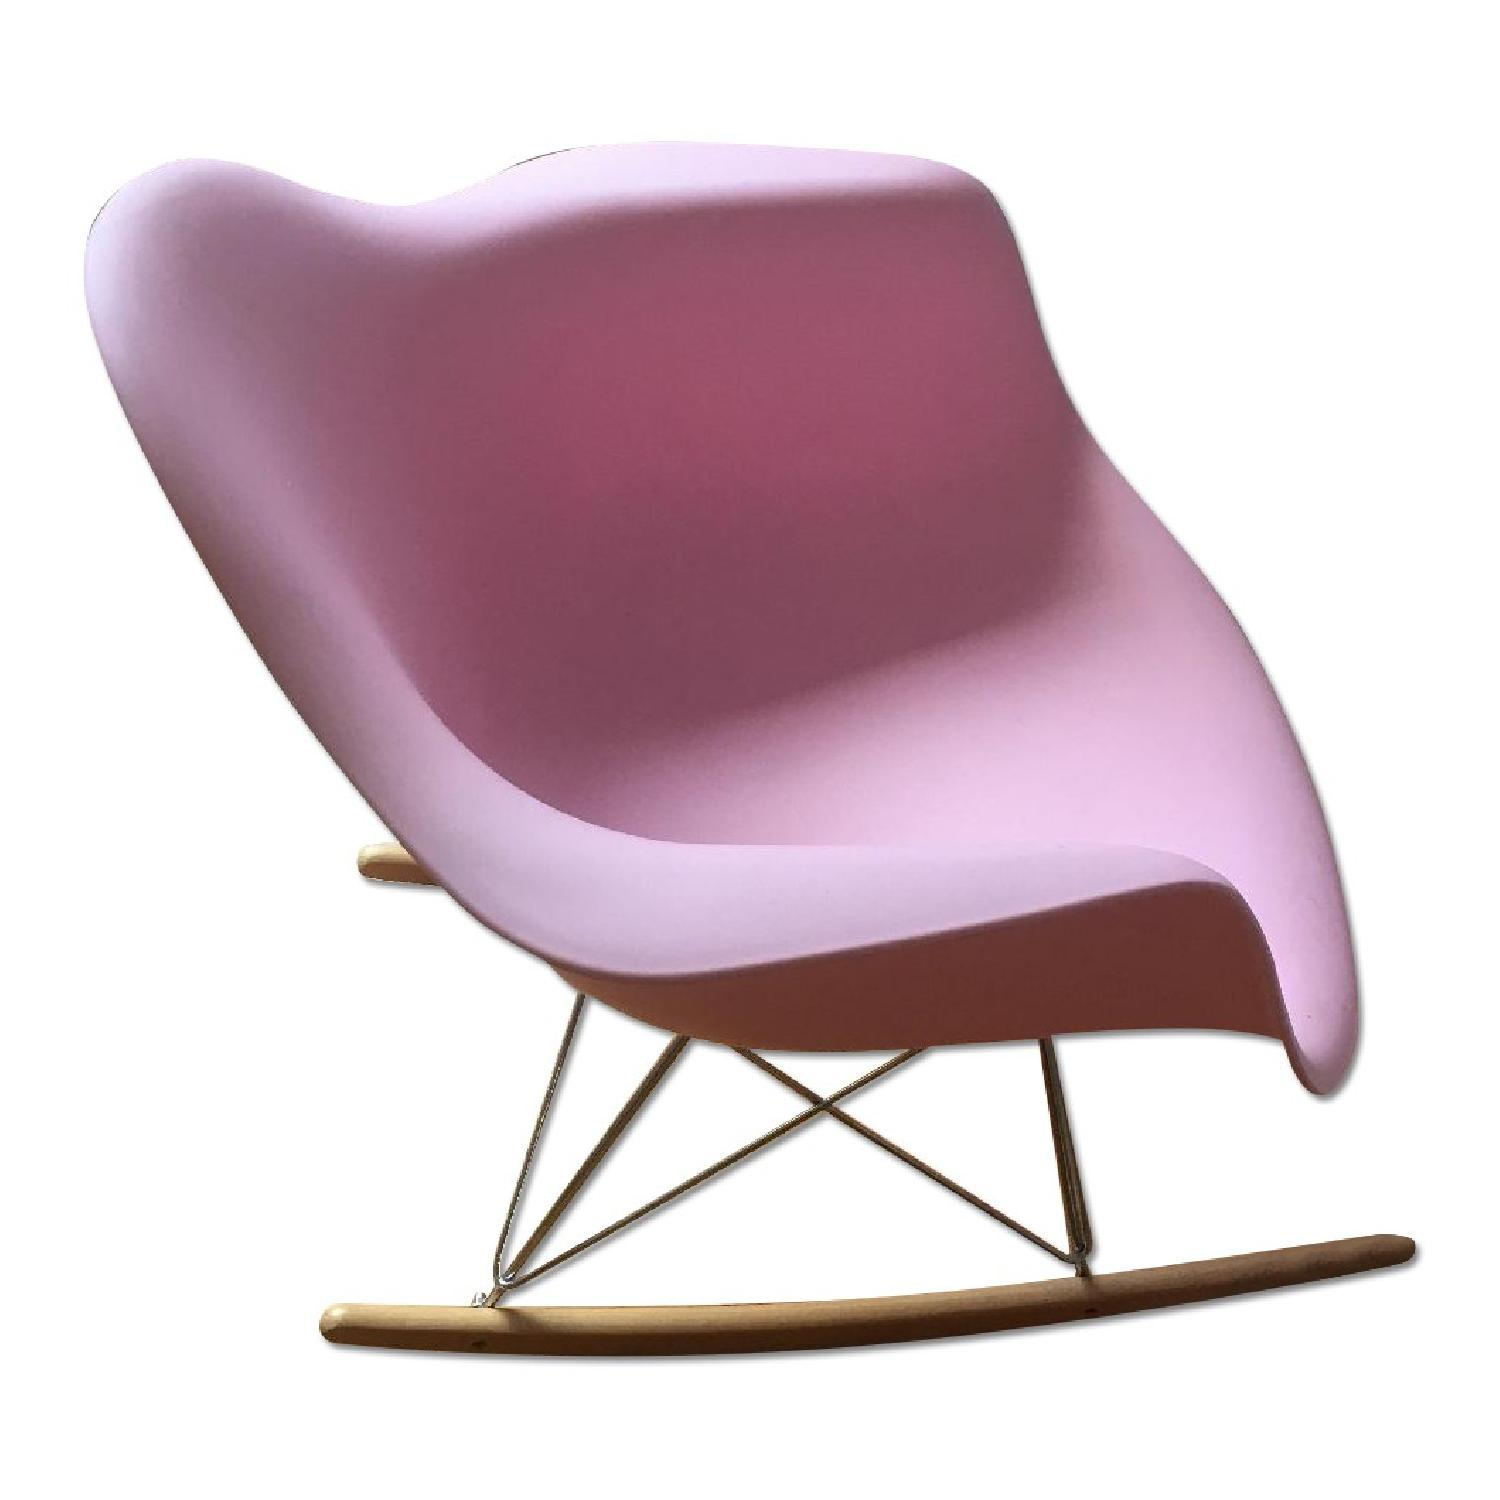 Pink Replica Eames Rocking Chair - image-0